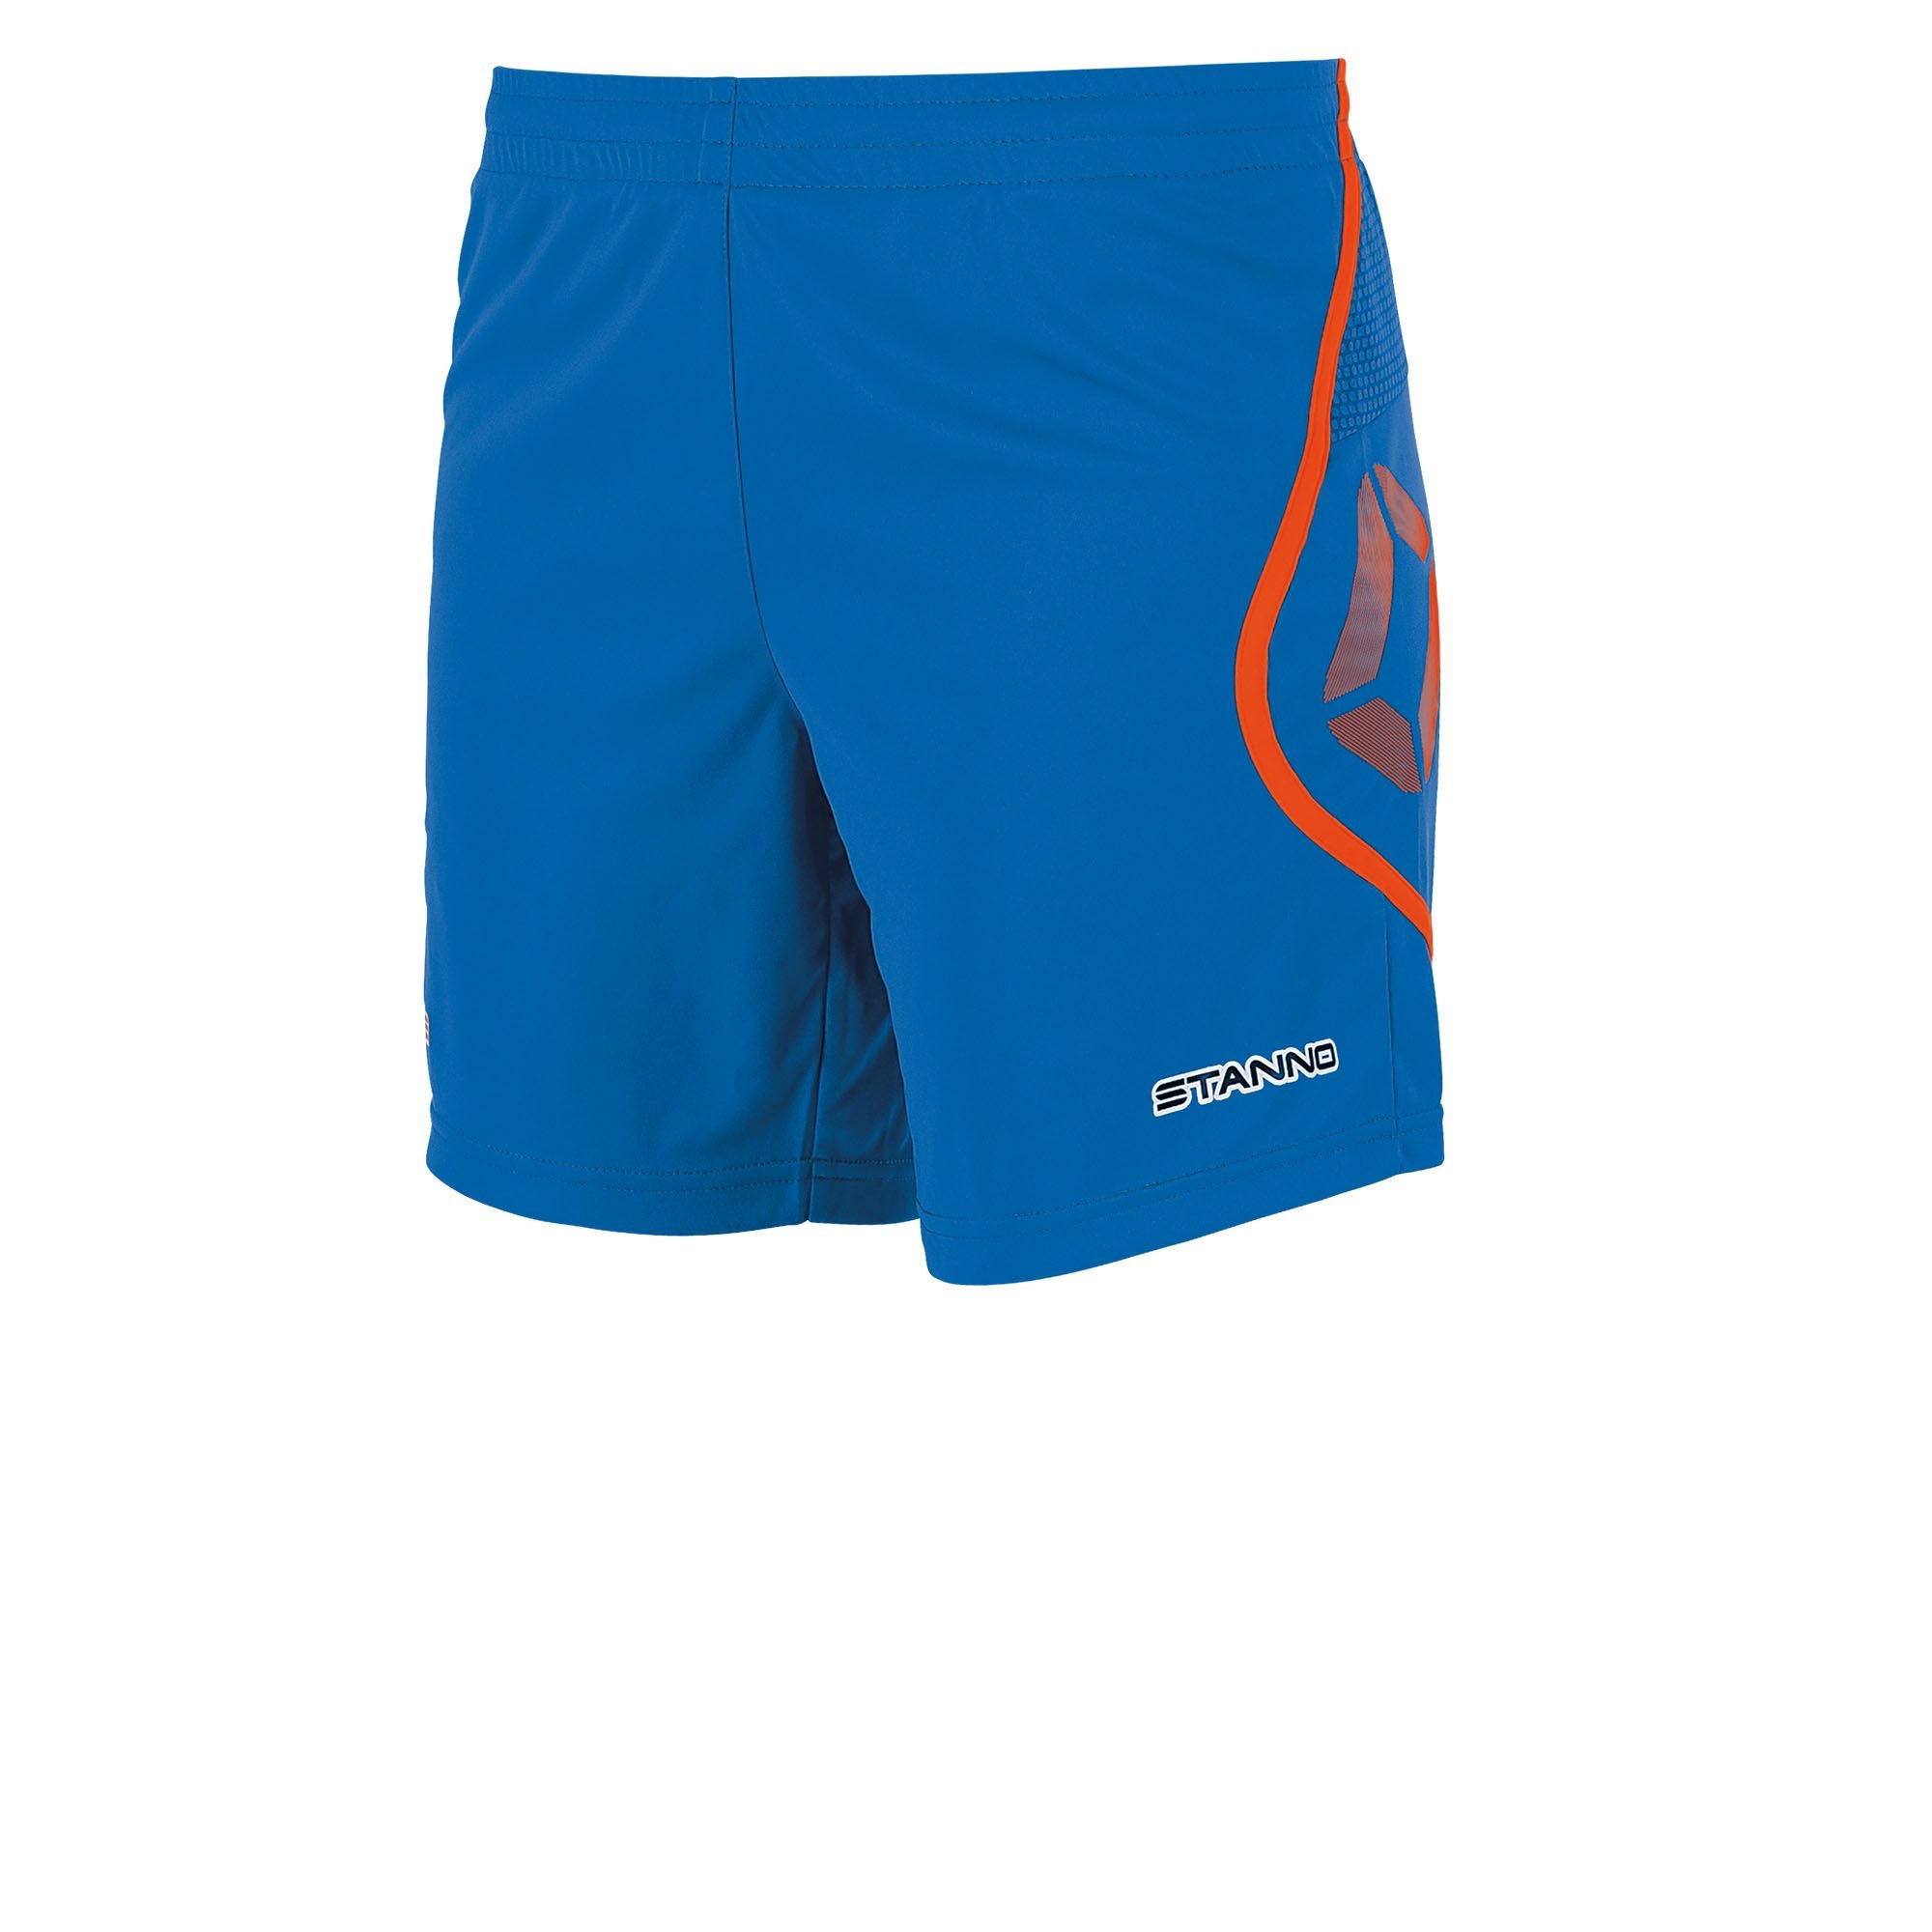 Stanno Pisa Shorts Ladies - Blue/Shocking Orange